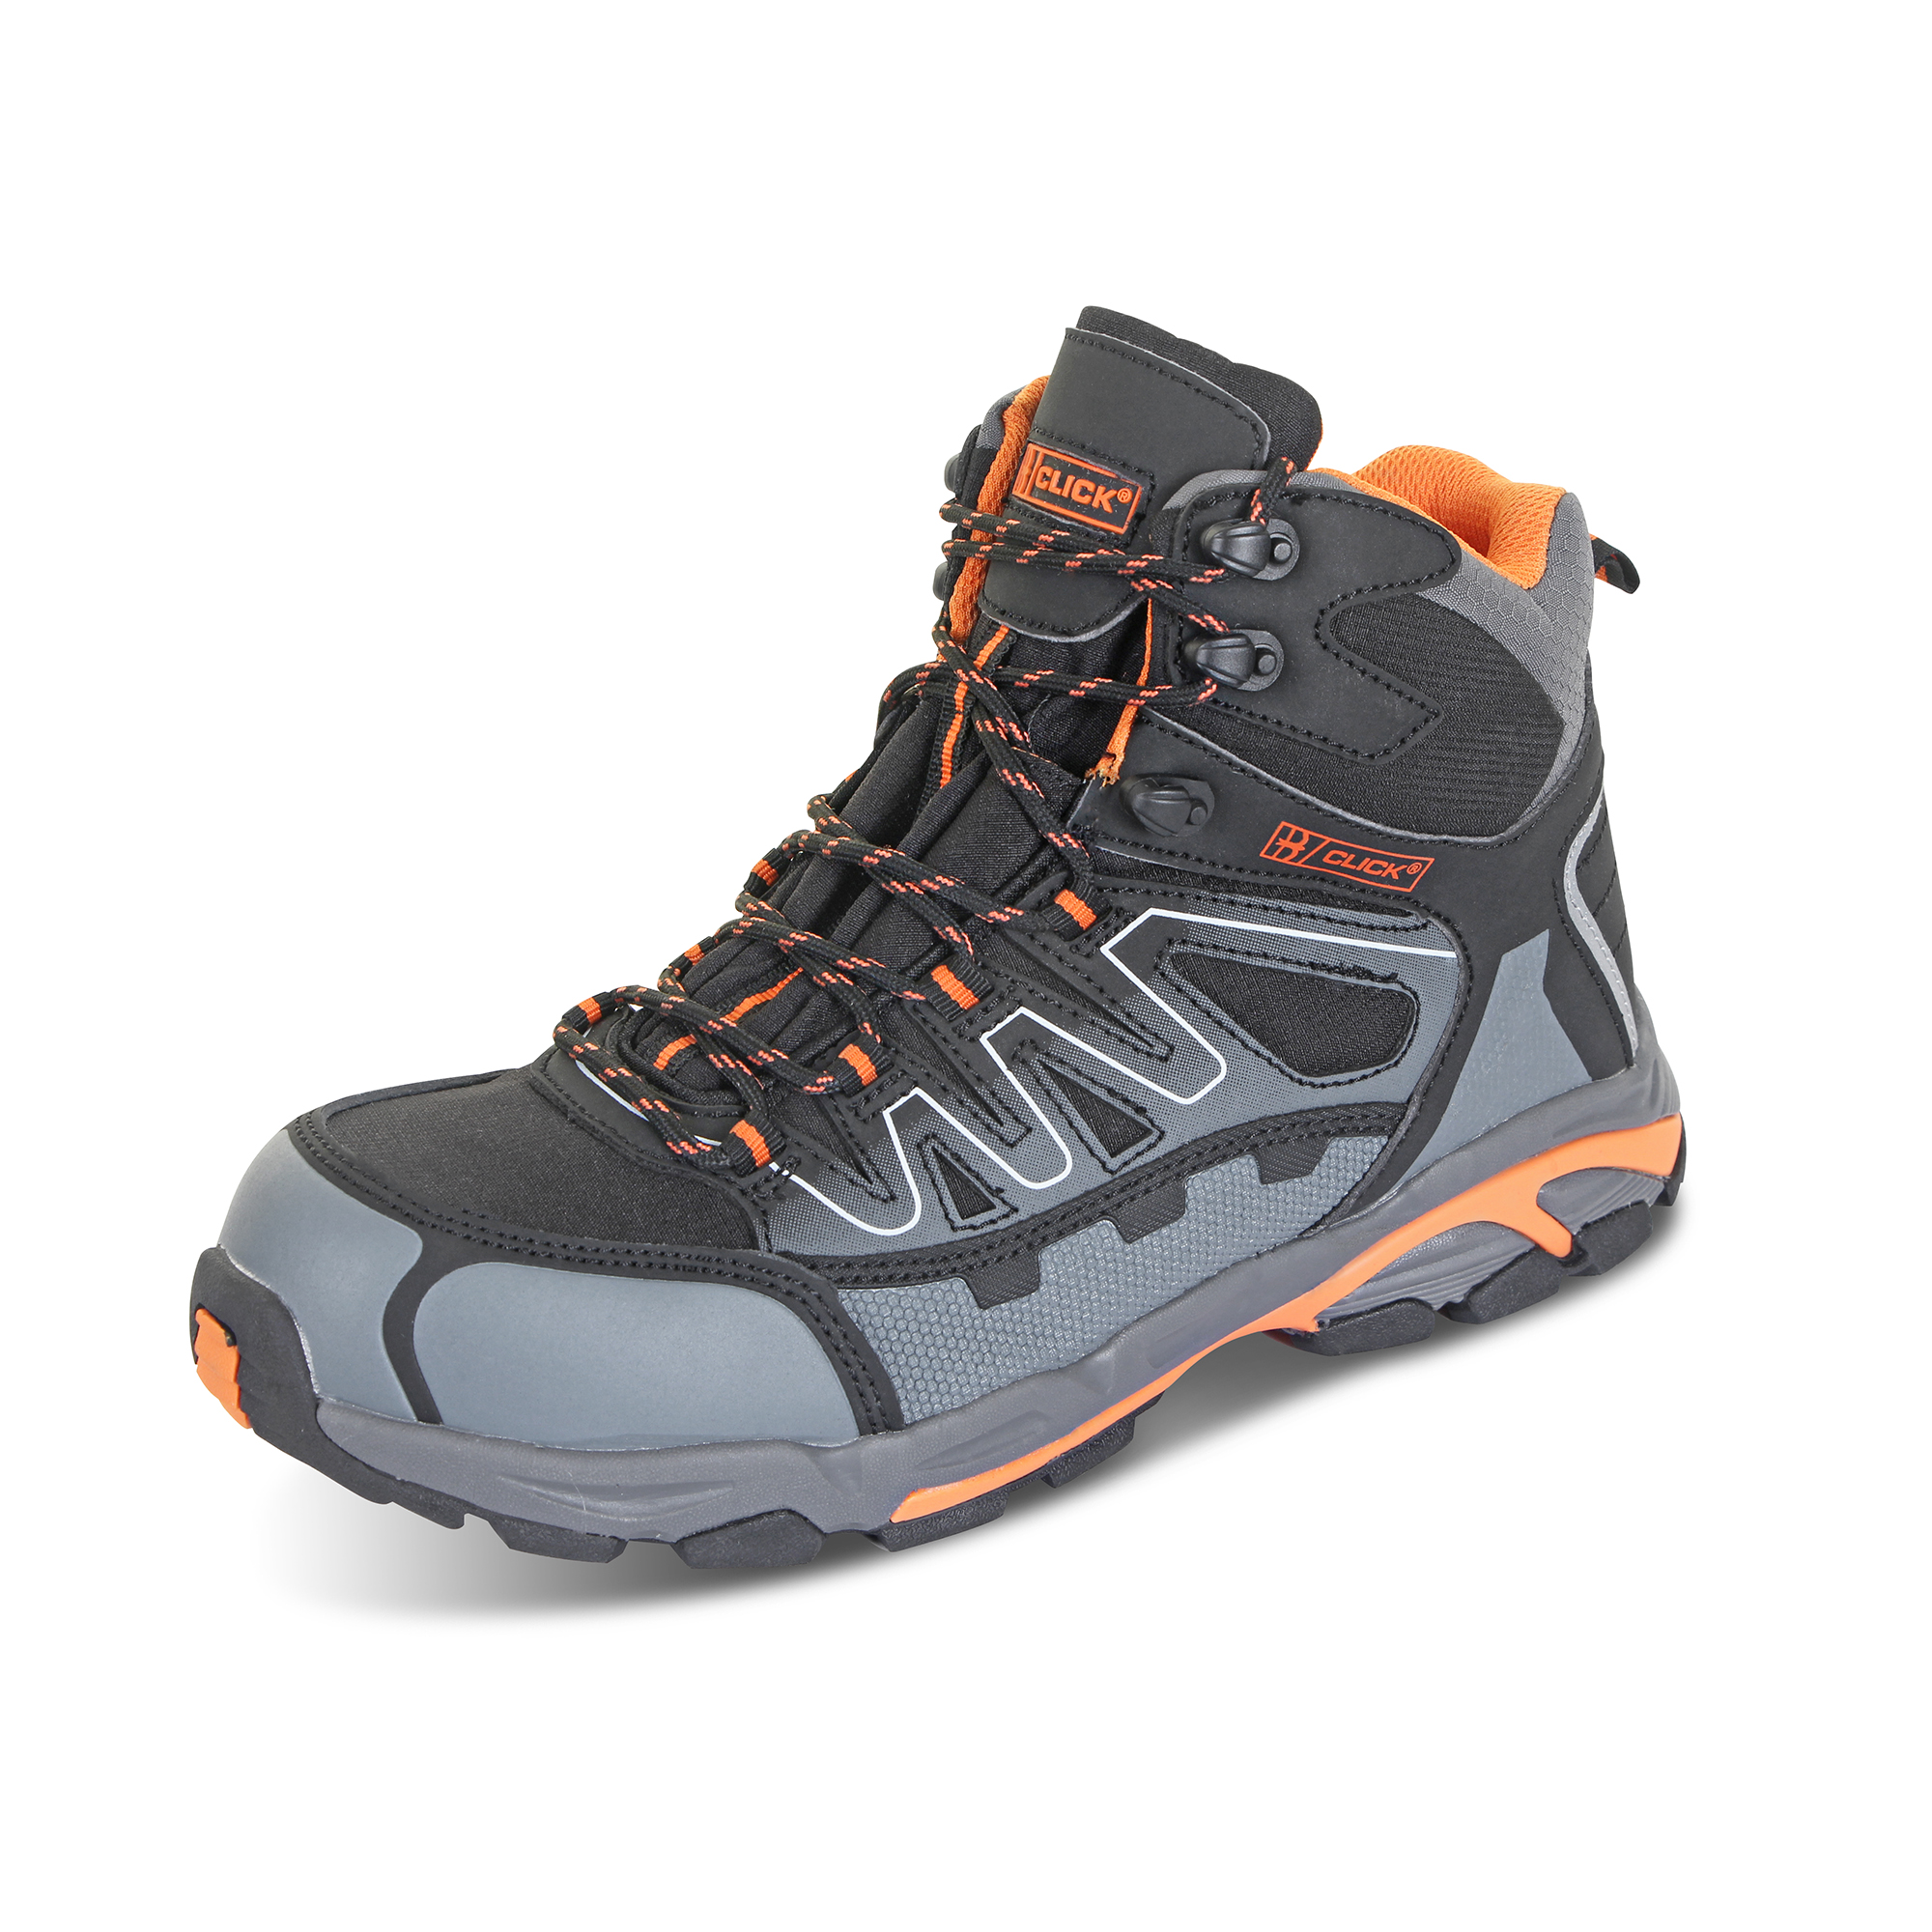 Limitless Click Footwear Leather S3 Hiker Boot Composite Toe Size 12 Black/Grey Ref CF3512 *Up to 3 Day Leadtime*